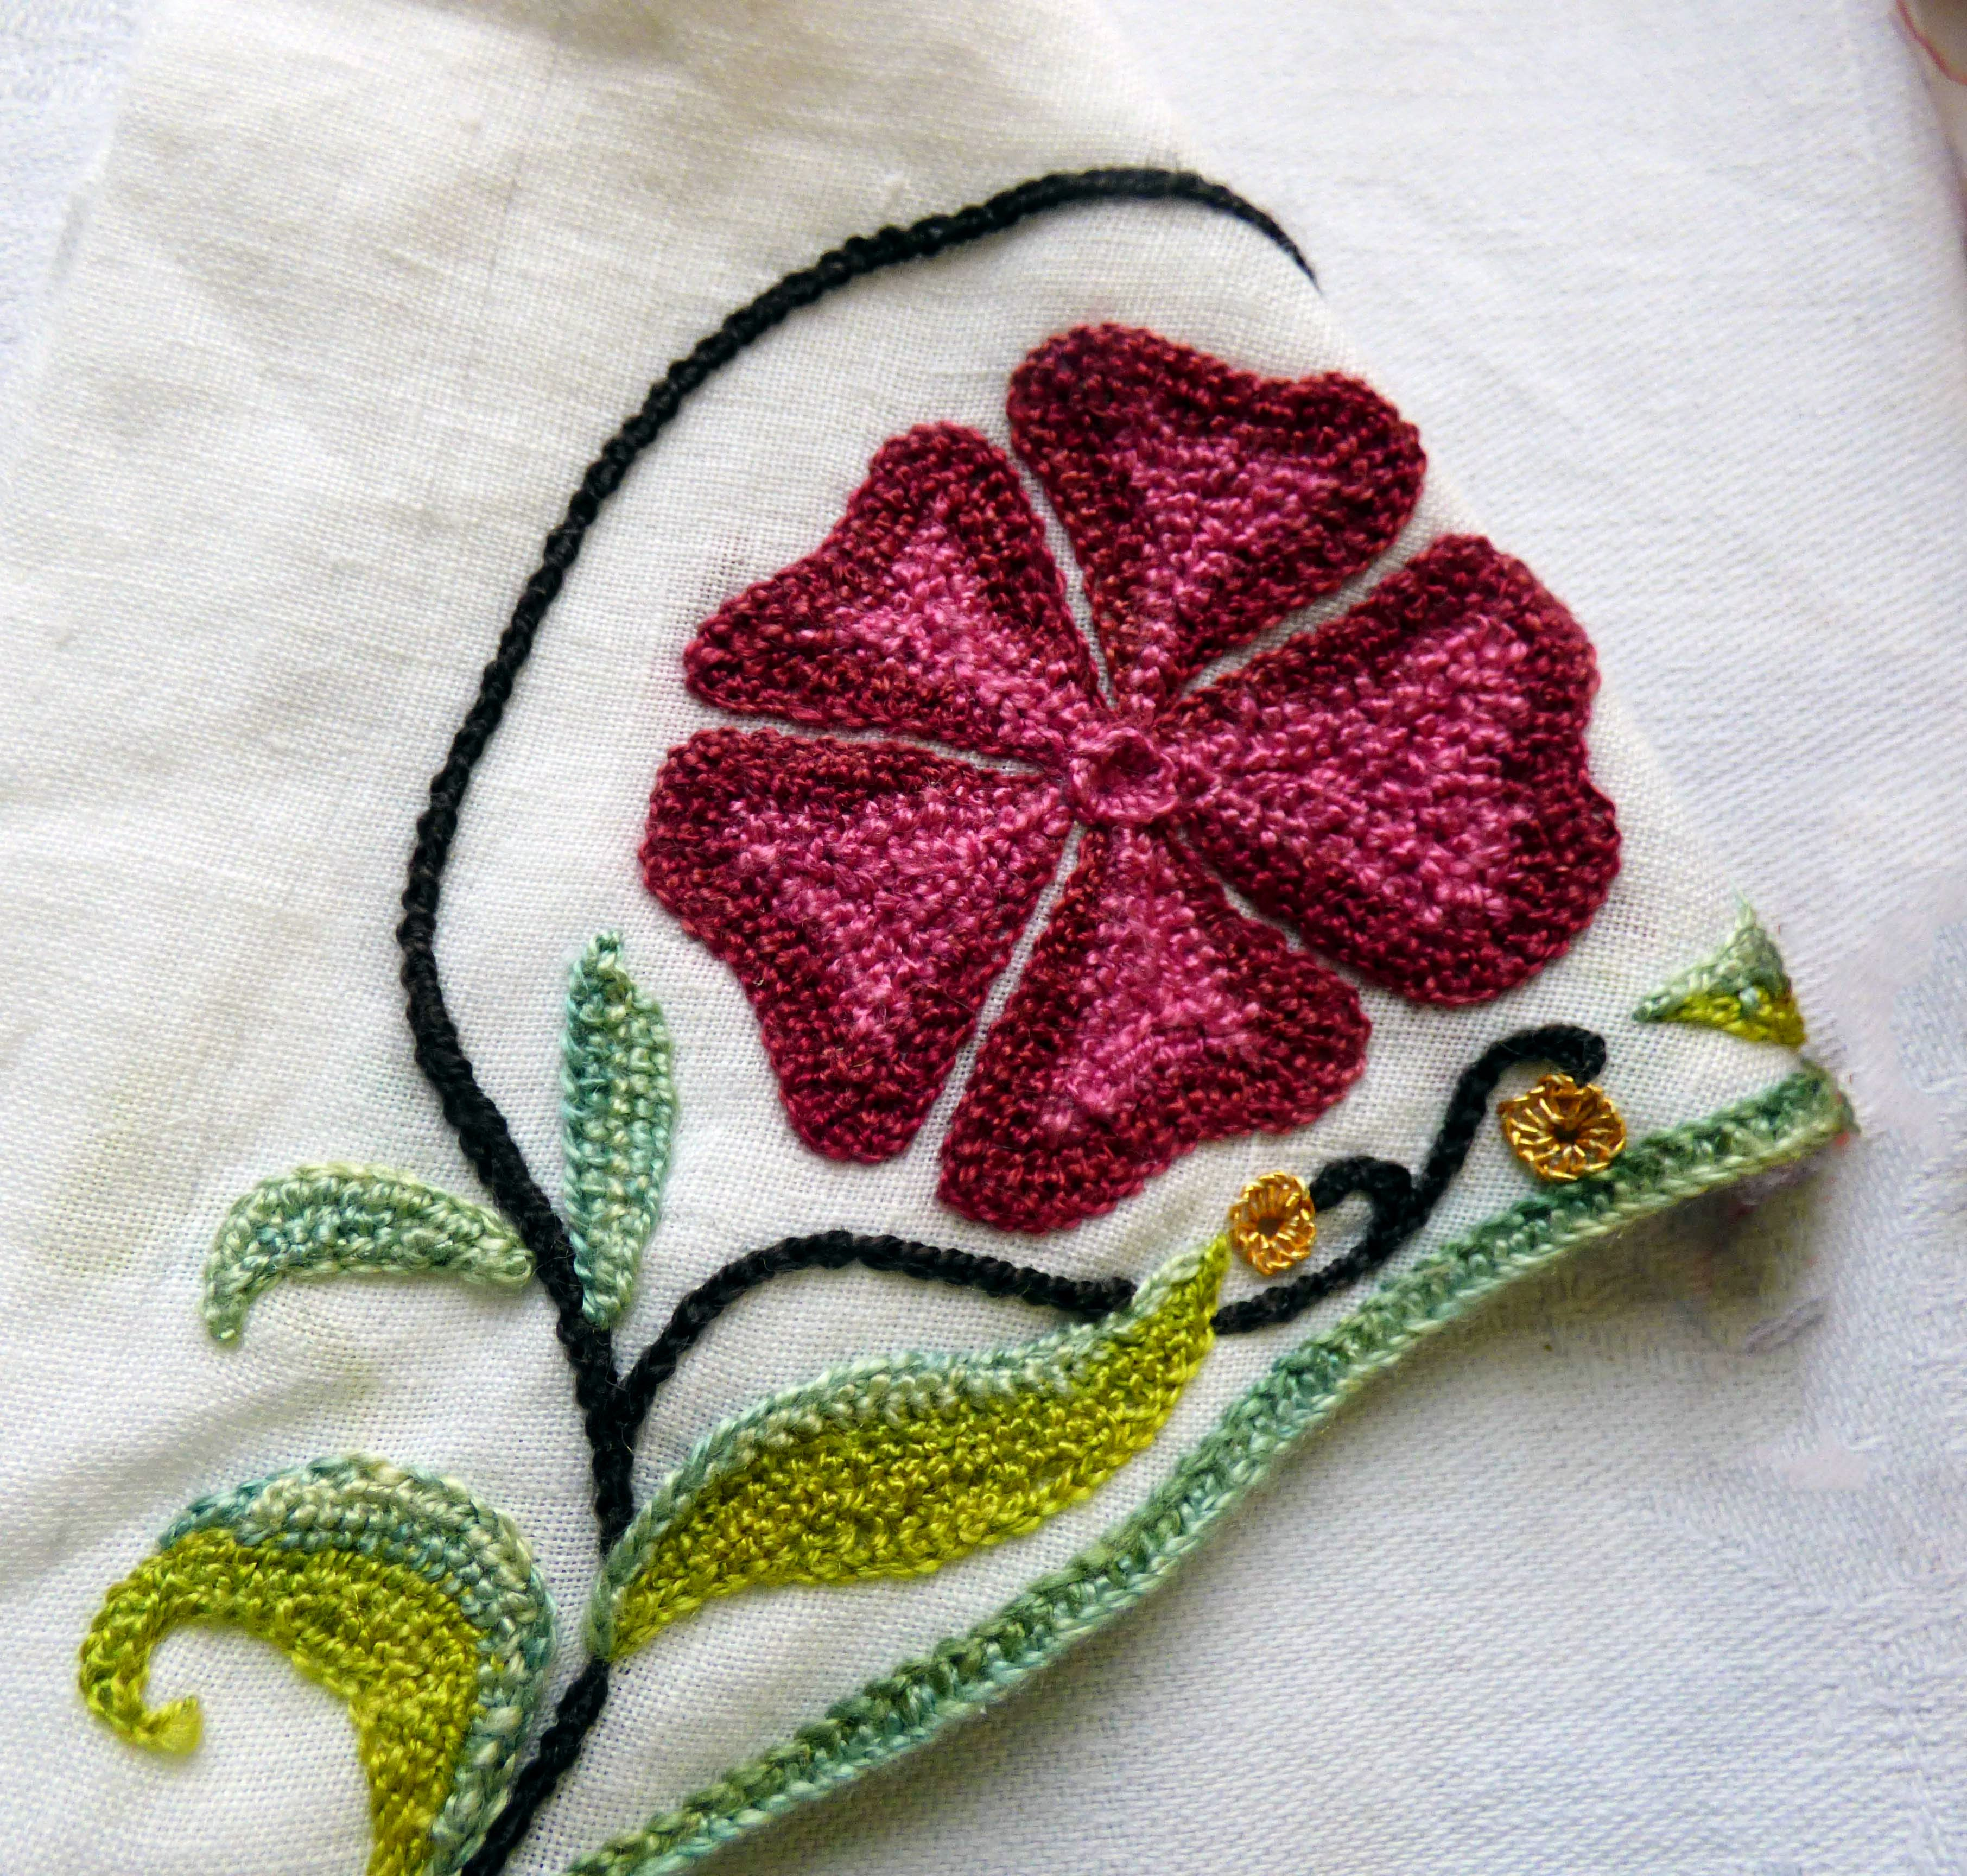 embroidery by Carolyn Richardson, Embroidery of the Jacobean era, Jan 2019